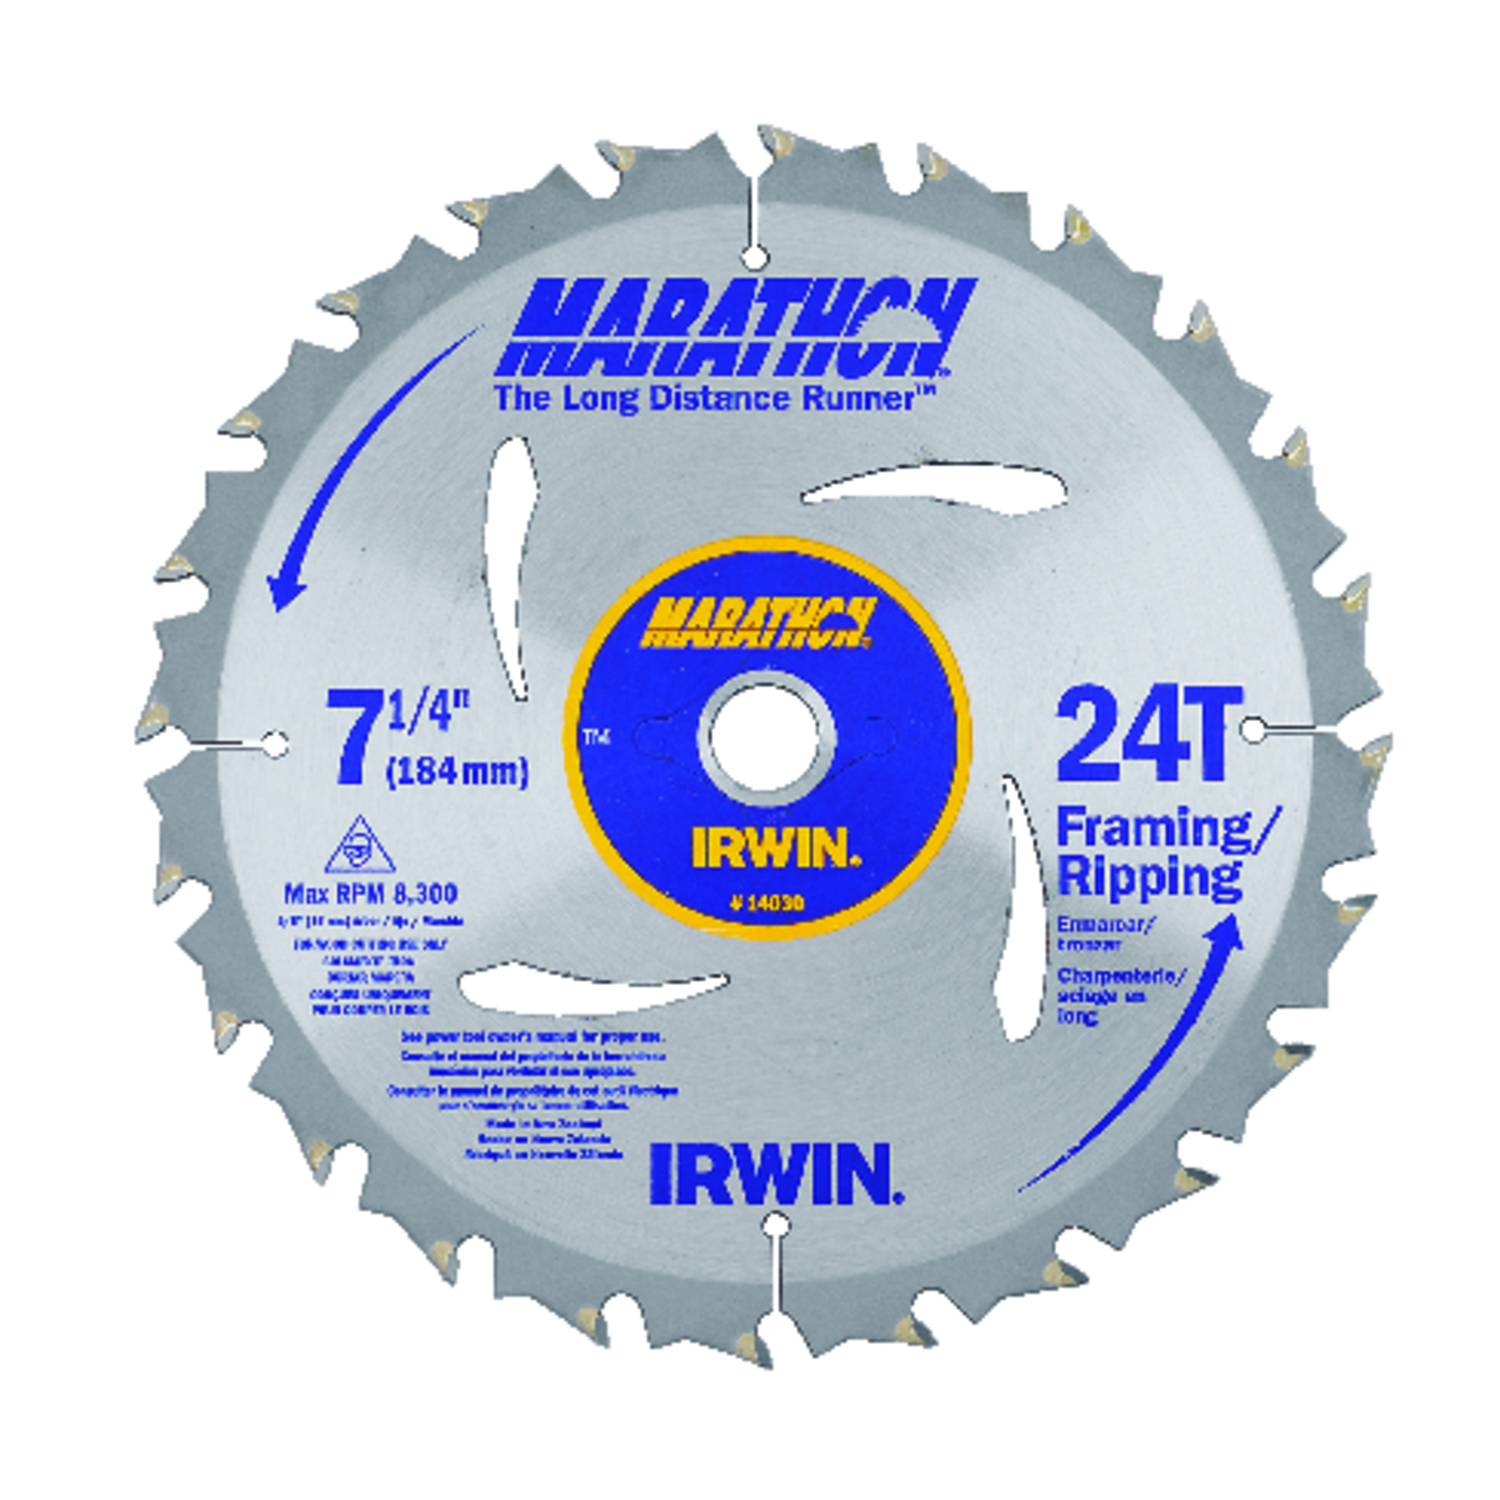 Irwin  Marathon  7-1/4 in.  Dia. x 5/8 in.  Carbide  Marathon  Circular Saw Blade  24 teeth 1 pk